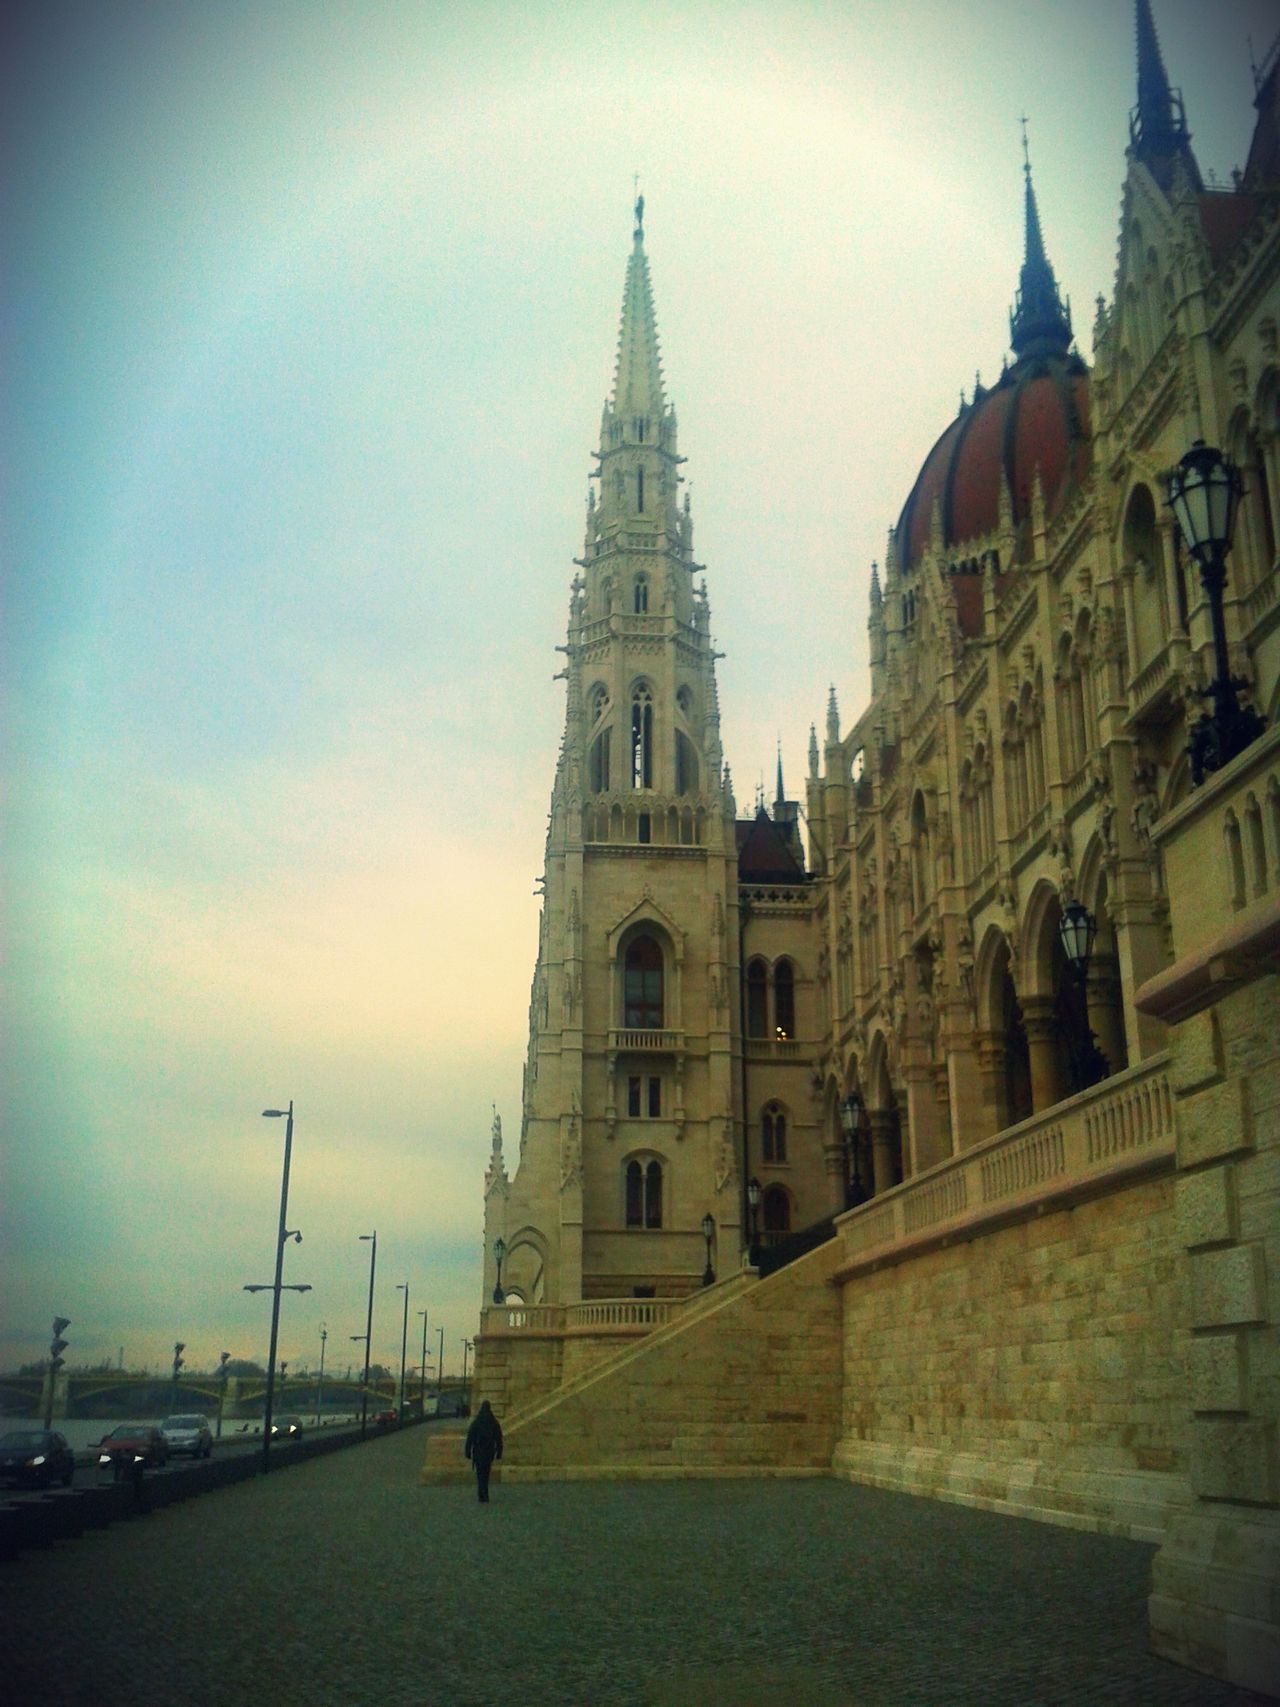 Architecture Budapest Building Exterior Built Structure History Hungary International Landmark Neoclassical Orszaghaz Outdoors Parlament Parliament Tower